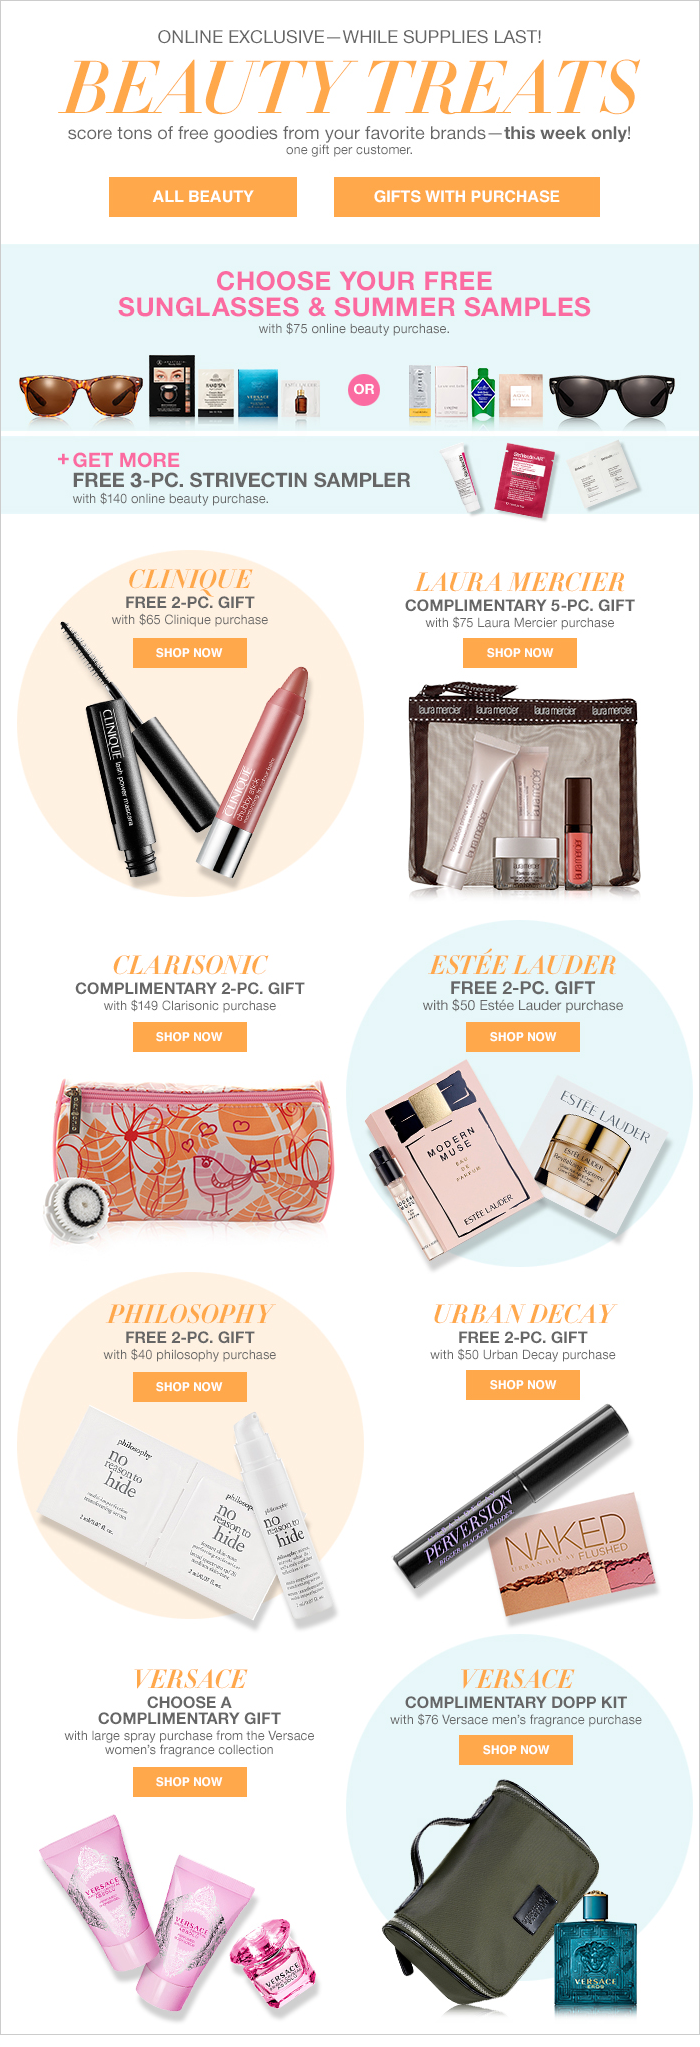 Clinique Bonus Time and Clinique Free Gift with Purchase @ Multiple Stores (May 2015 – June 2015)